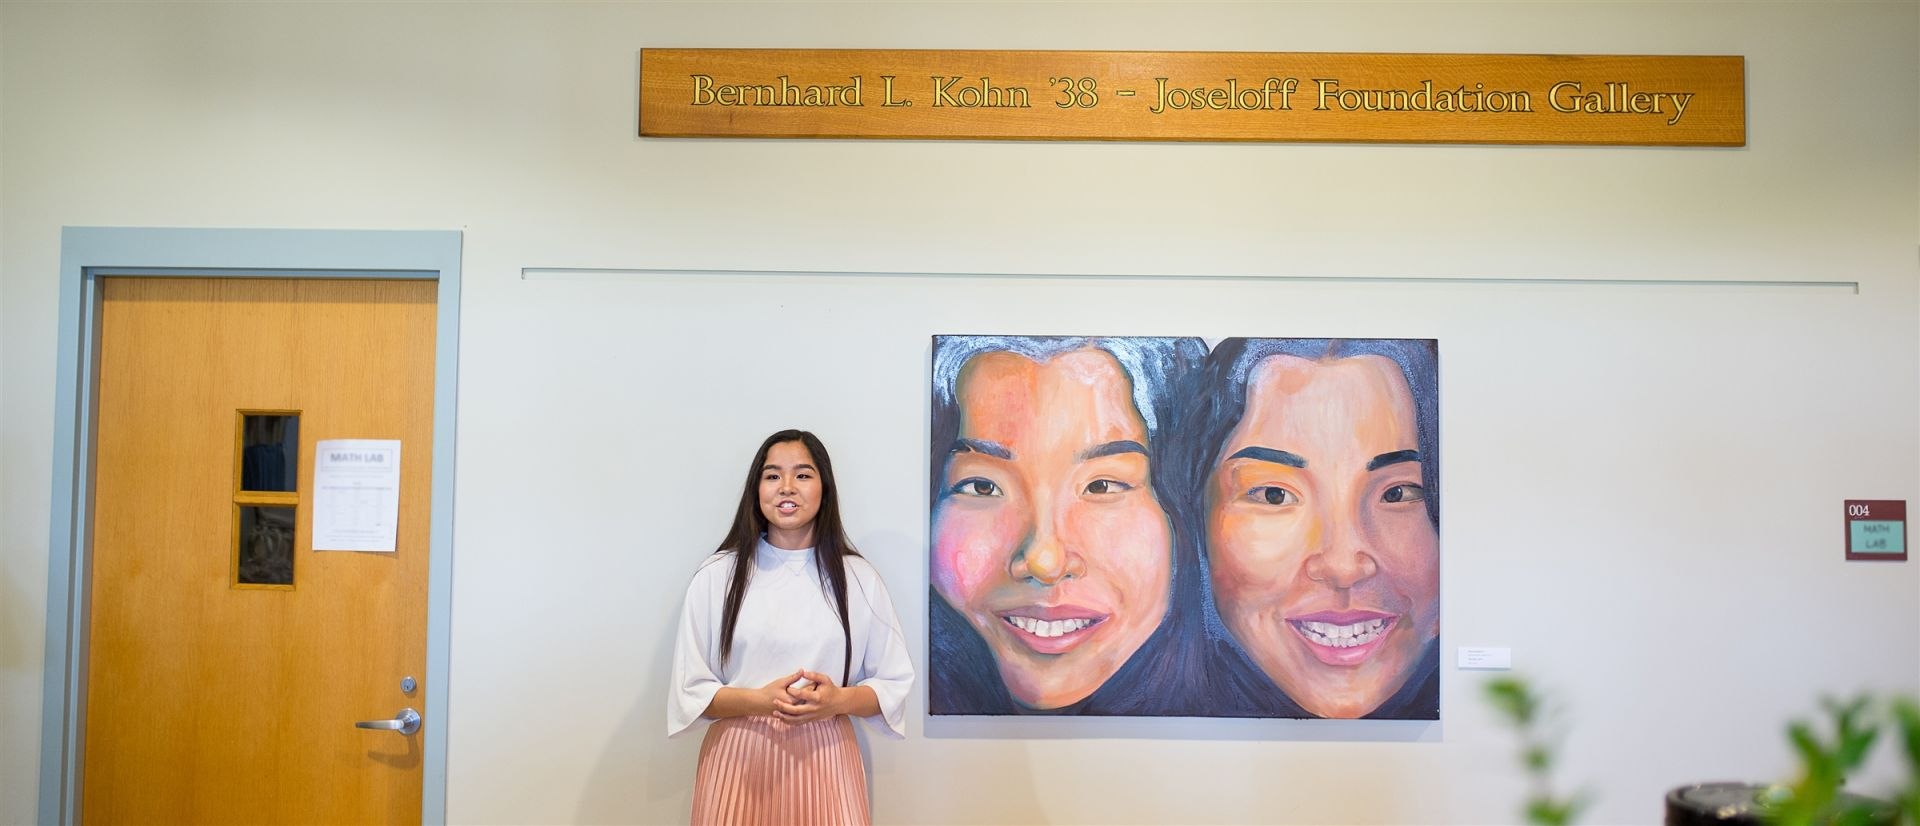 The Kohn-Joseloff Gallery was founded in 1998 through gifts from the Kohn-Joseloff Foundation. The gallery features exhibits from current students and alumni of Cheshire Academy, along with exhibits from celebrated artists in the New Haven and Hartford area.  <br><br> The Kohn-Joseloff Gallery is a place of continual learning for Cheshire Academy artists, as they attend lectures by area artists in the gallery, examine theoretical perspectives of current exhibits, and practice discussing their own influences during student and faculty art shows.